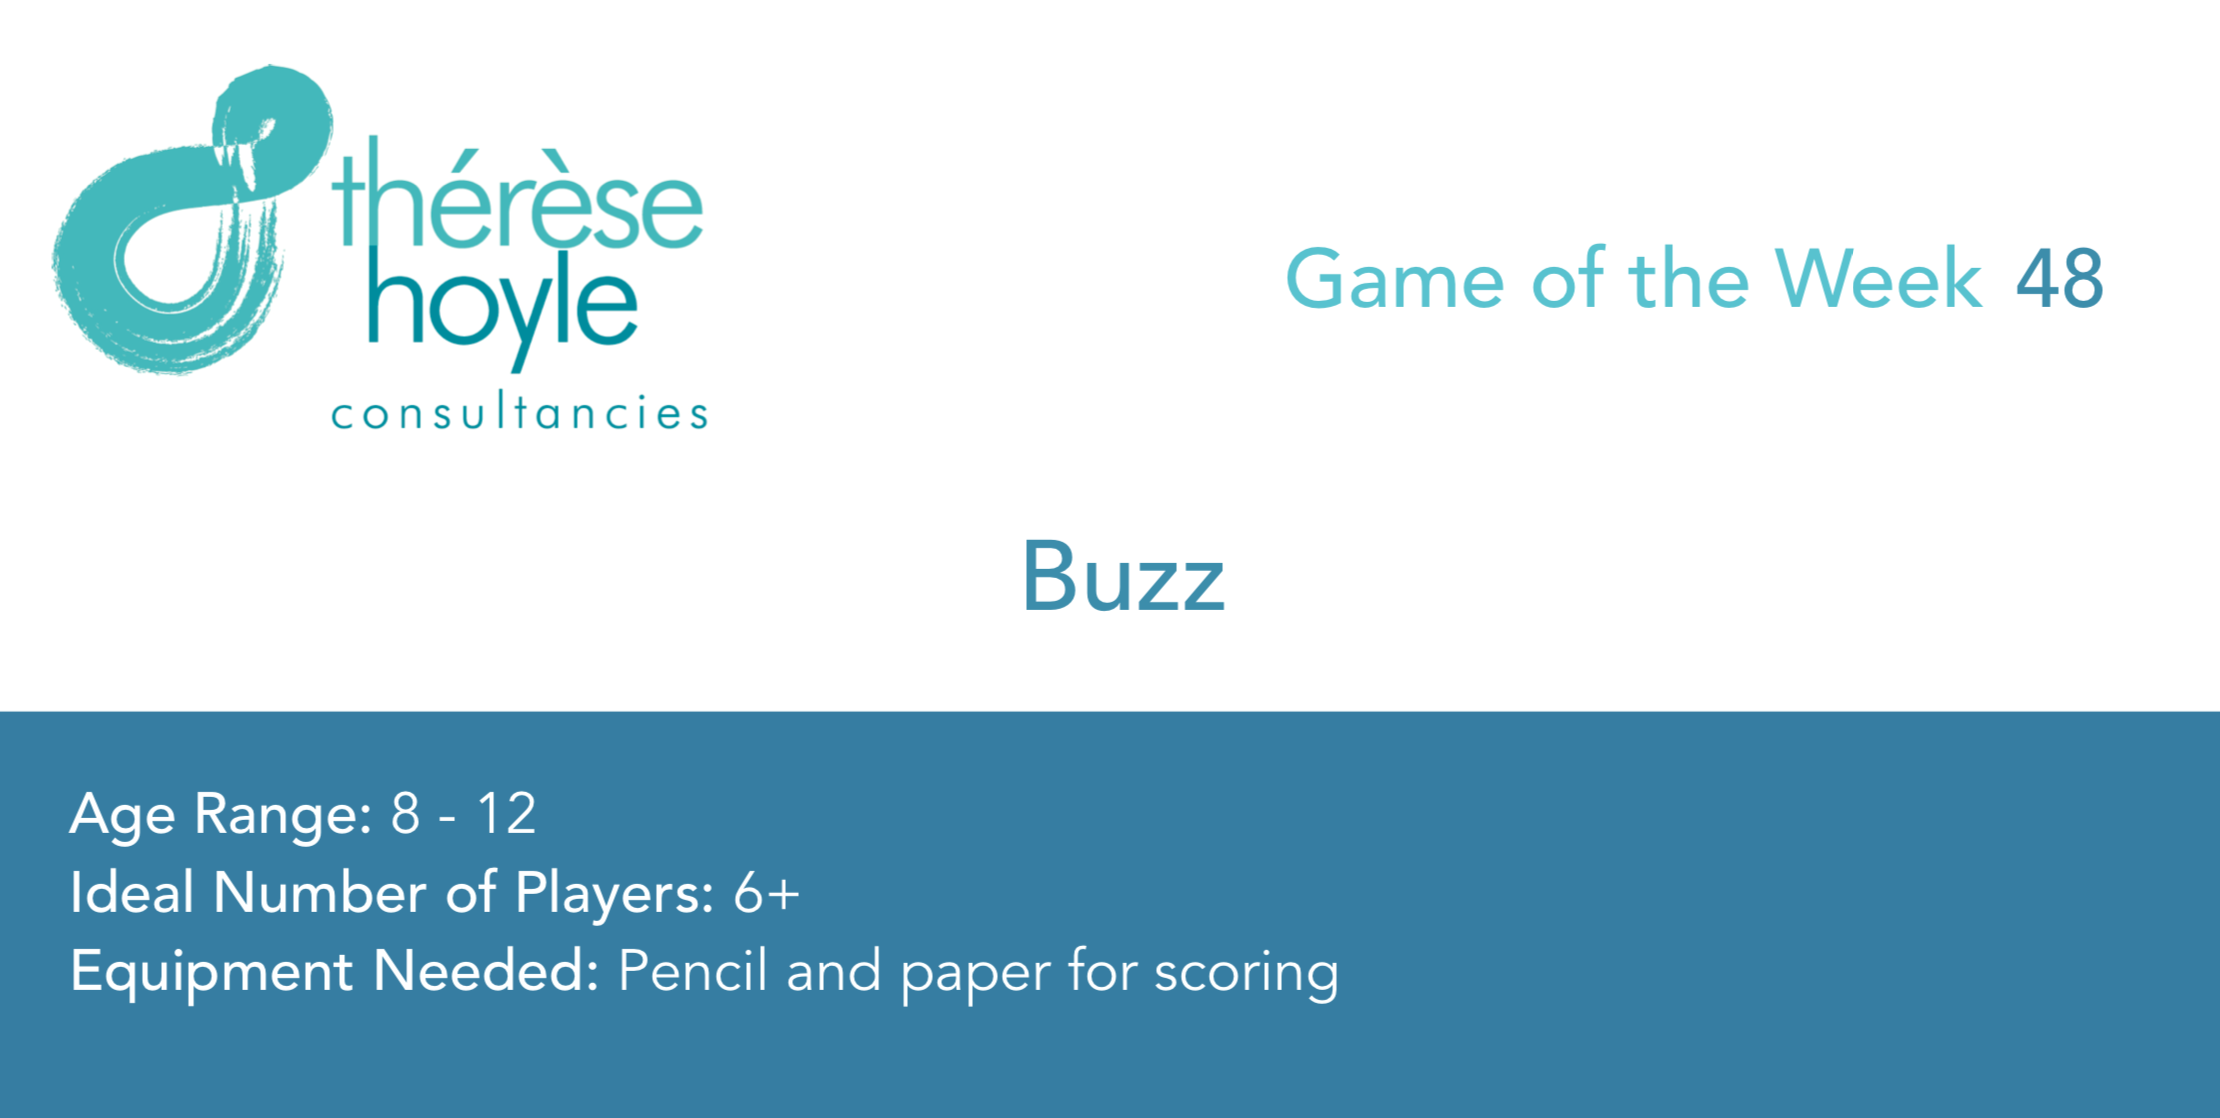 Game of the week Buzz